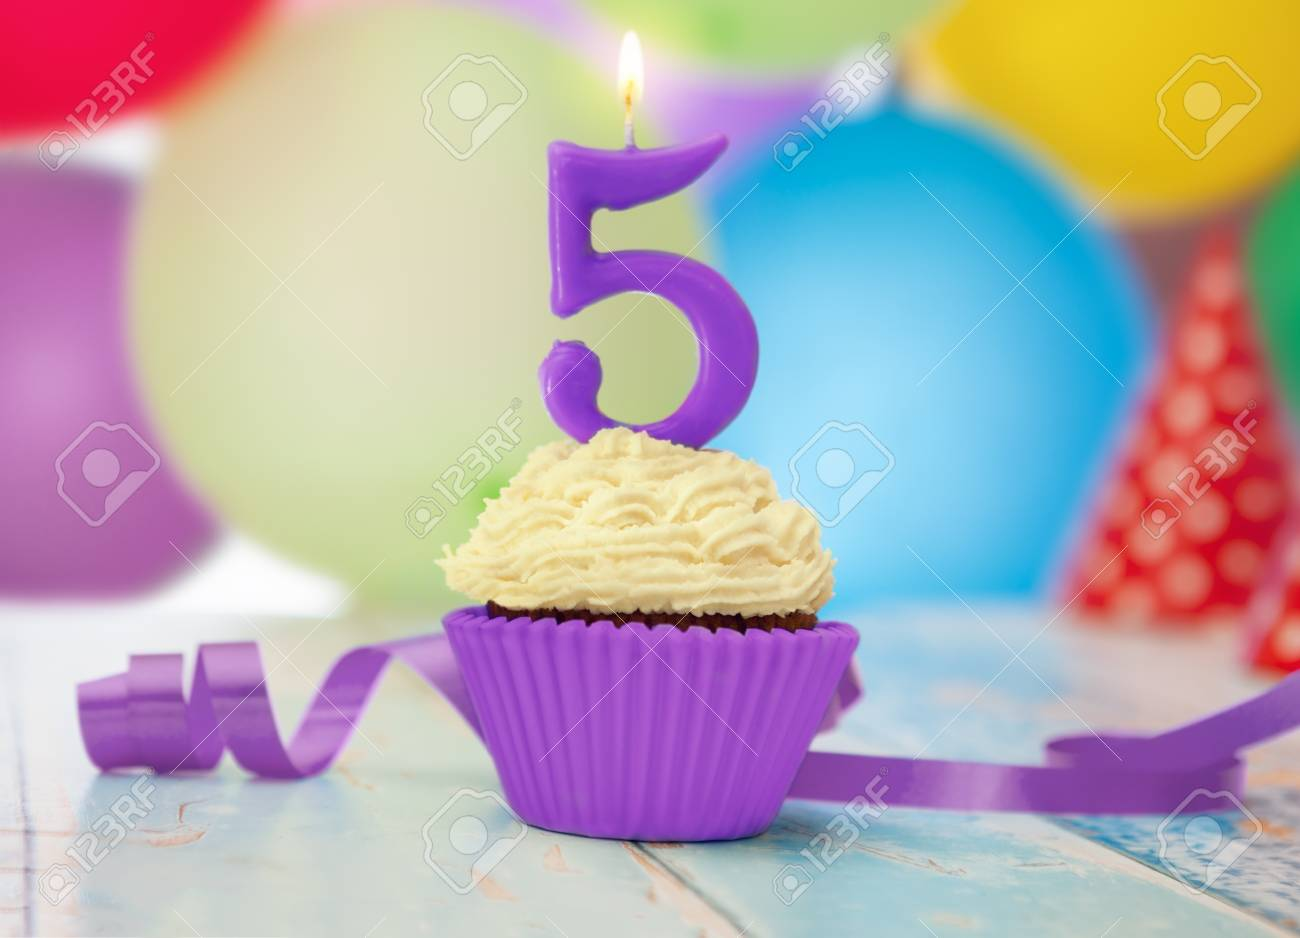 Birthday Candle With Number 5 On Cupcake Balloons In The Background Stock Photo